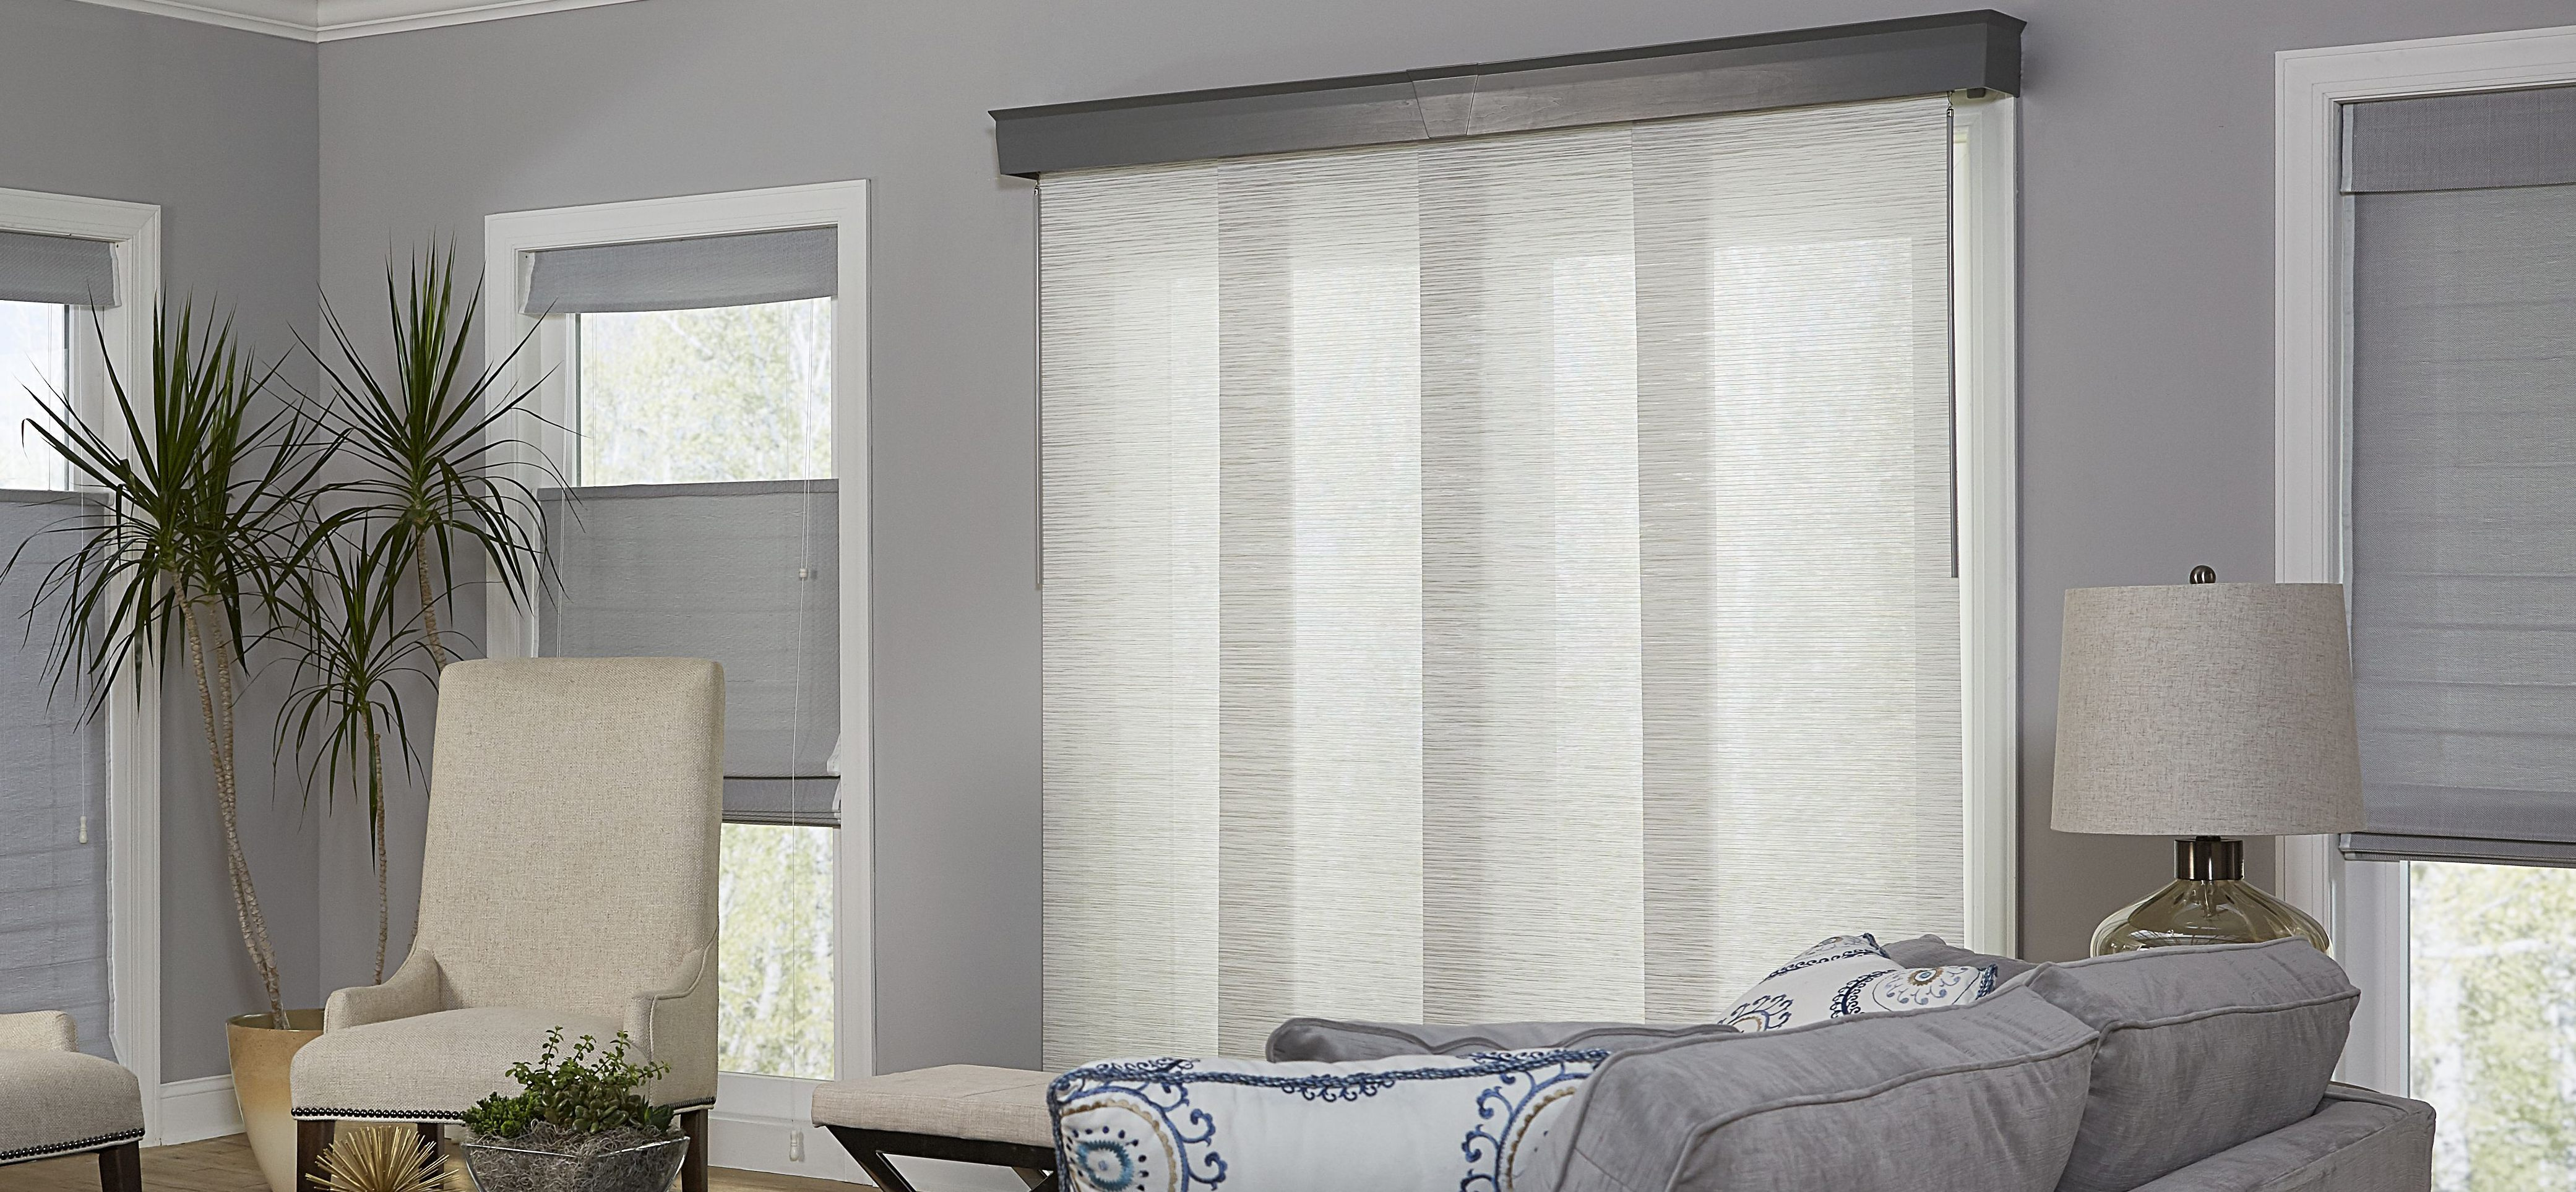 blinds for sliding doors if you need to